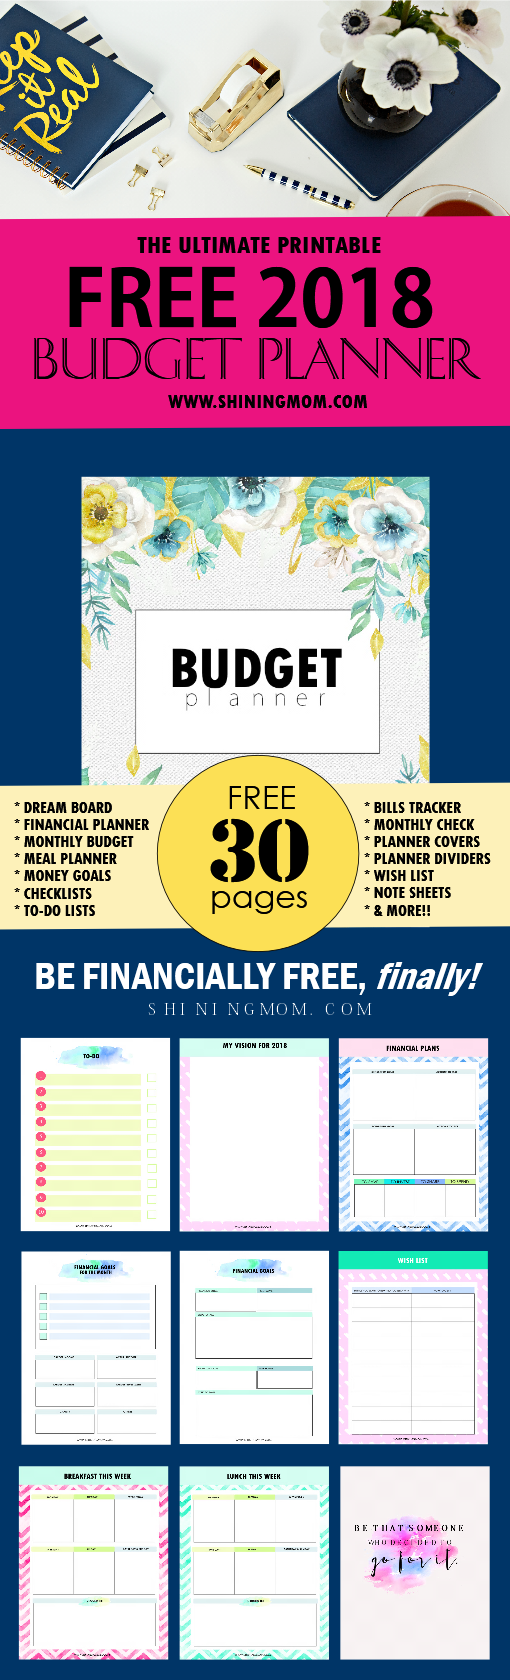 The ultimate free printable 2018 budget planner you need free budget binder 2018 printable solutioingenieria Gallery